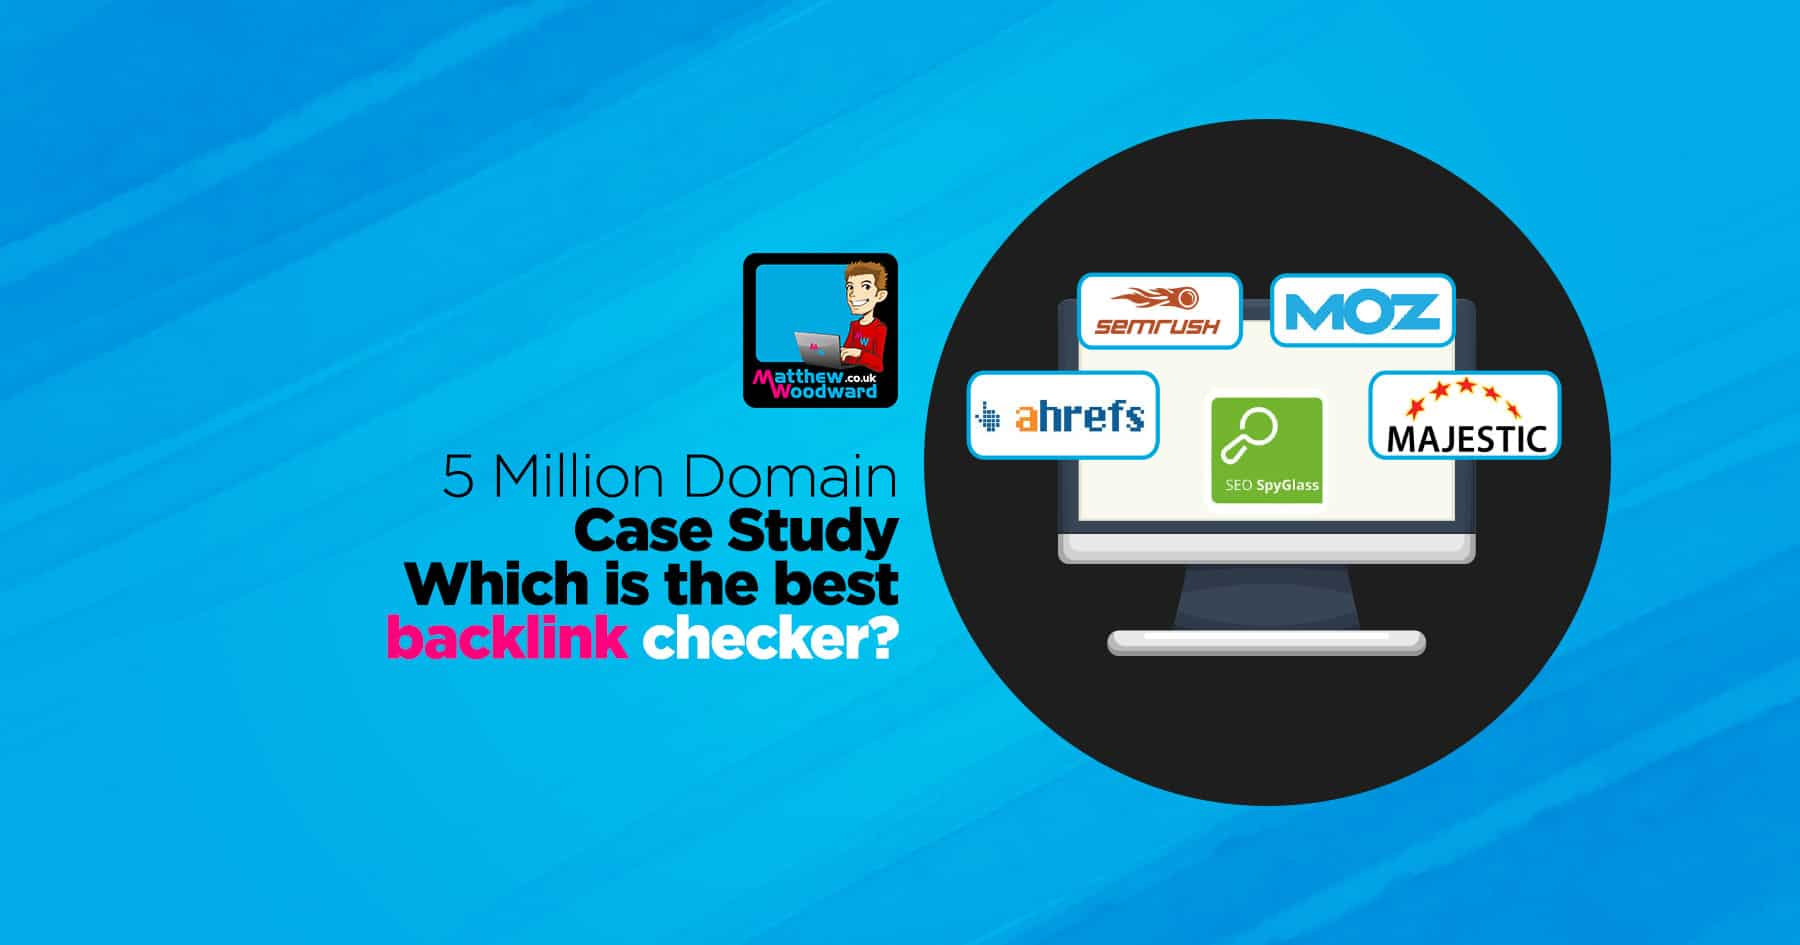 Which Is The Best Backlink Checker? - The Million Domain Case Study